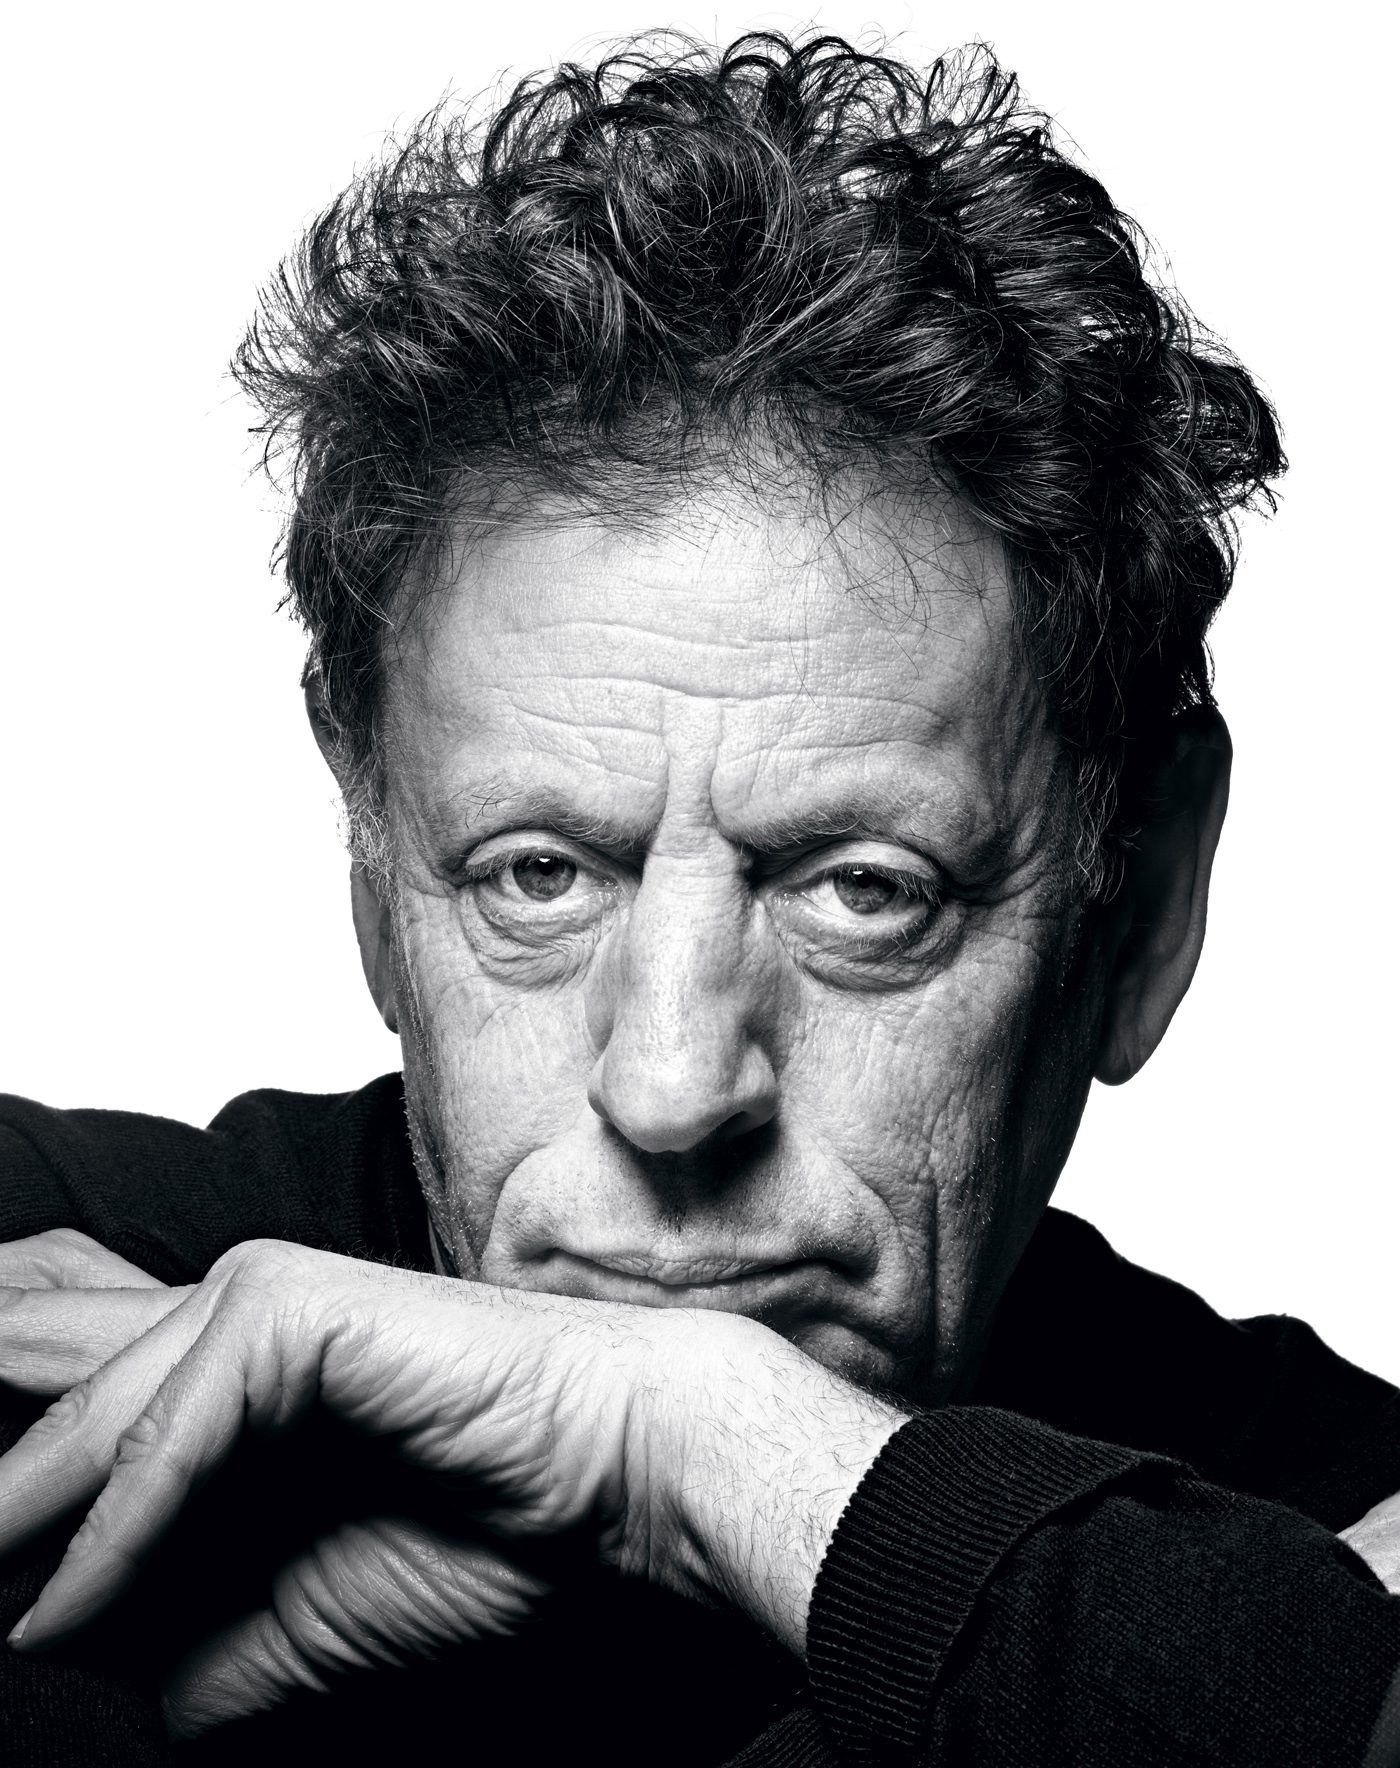 http://blog.baltic-sea-philharmonic.eu/wp-content/uploads/03_Philip-Glass-e1493627911510.jpg